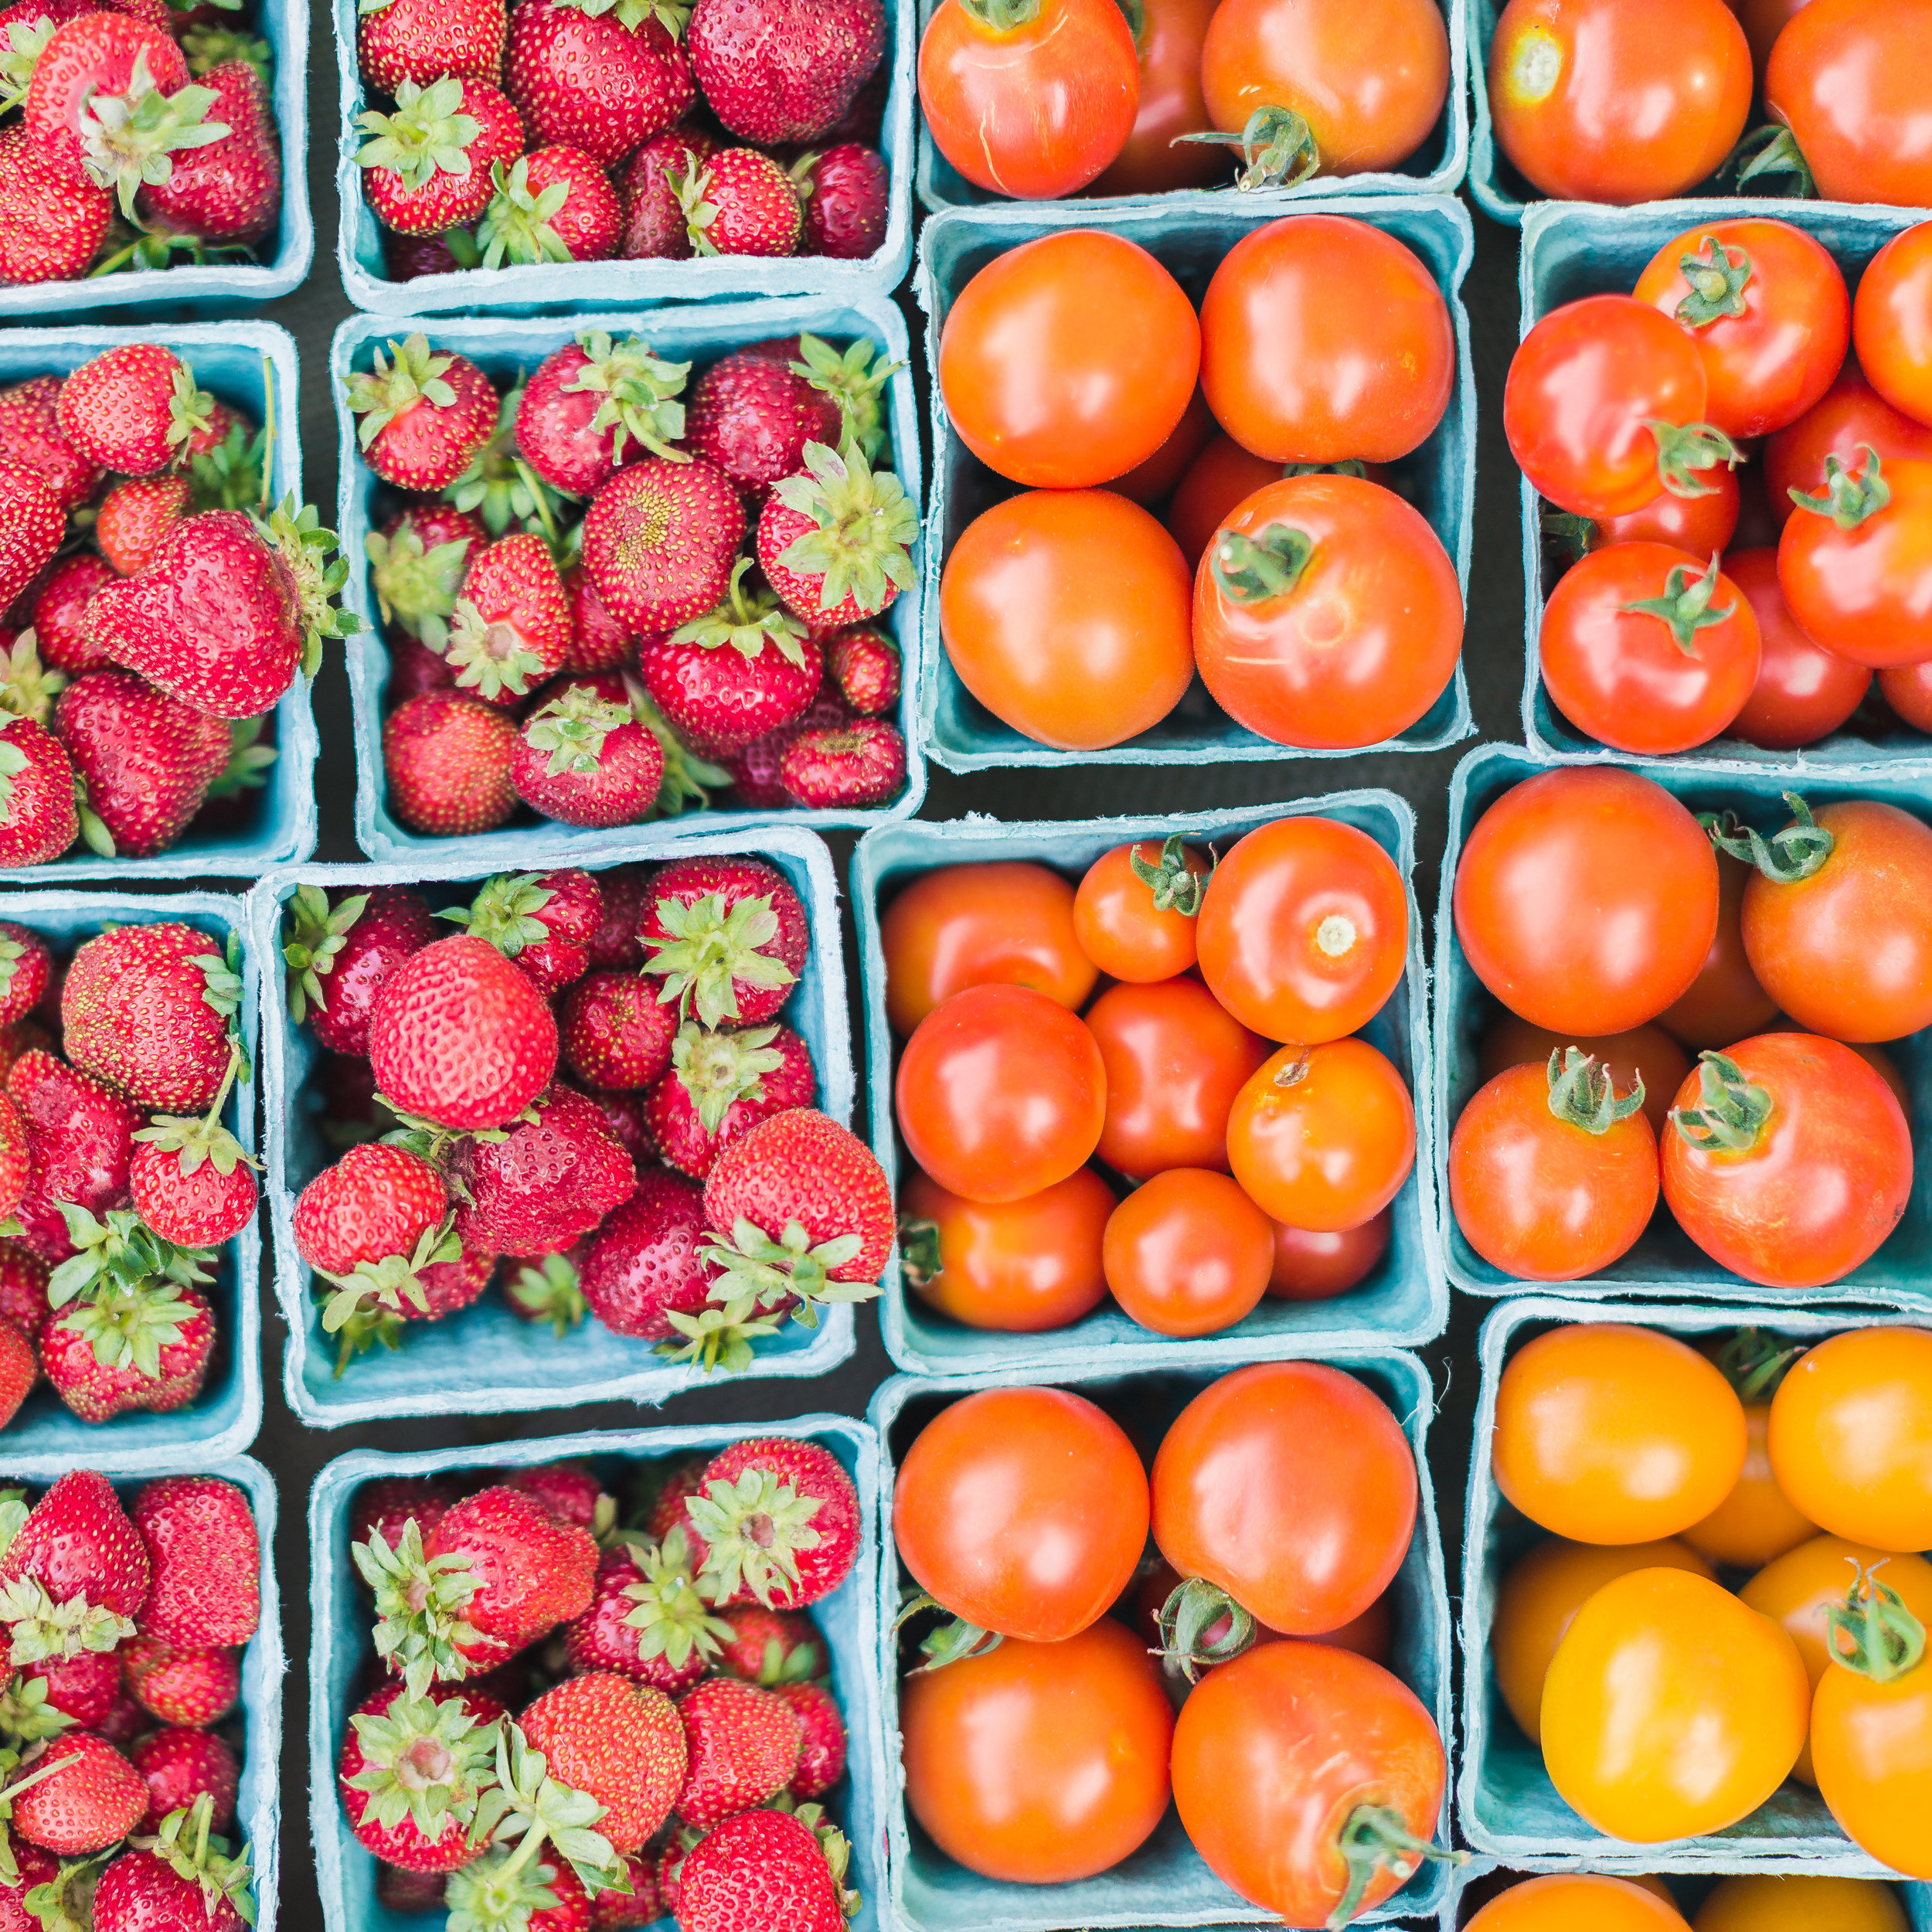 Sustainable Food Packaging Options To Satiate Consumer Interest. -